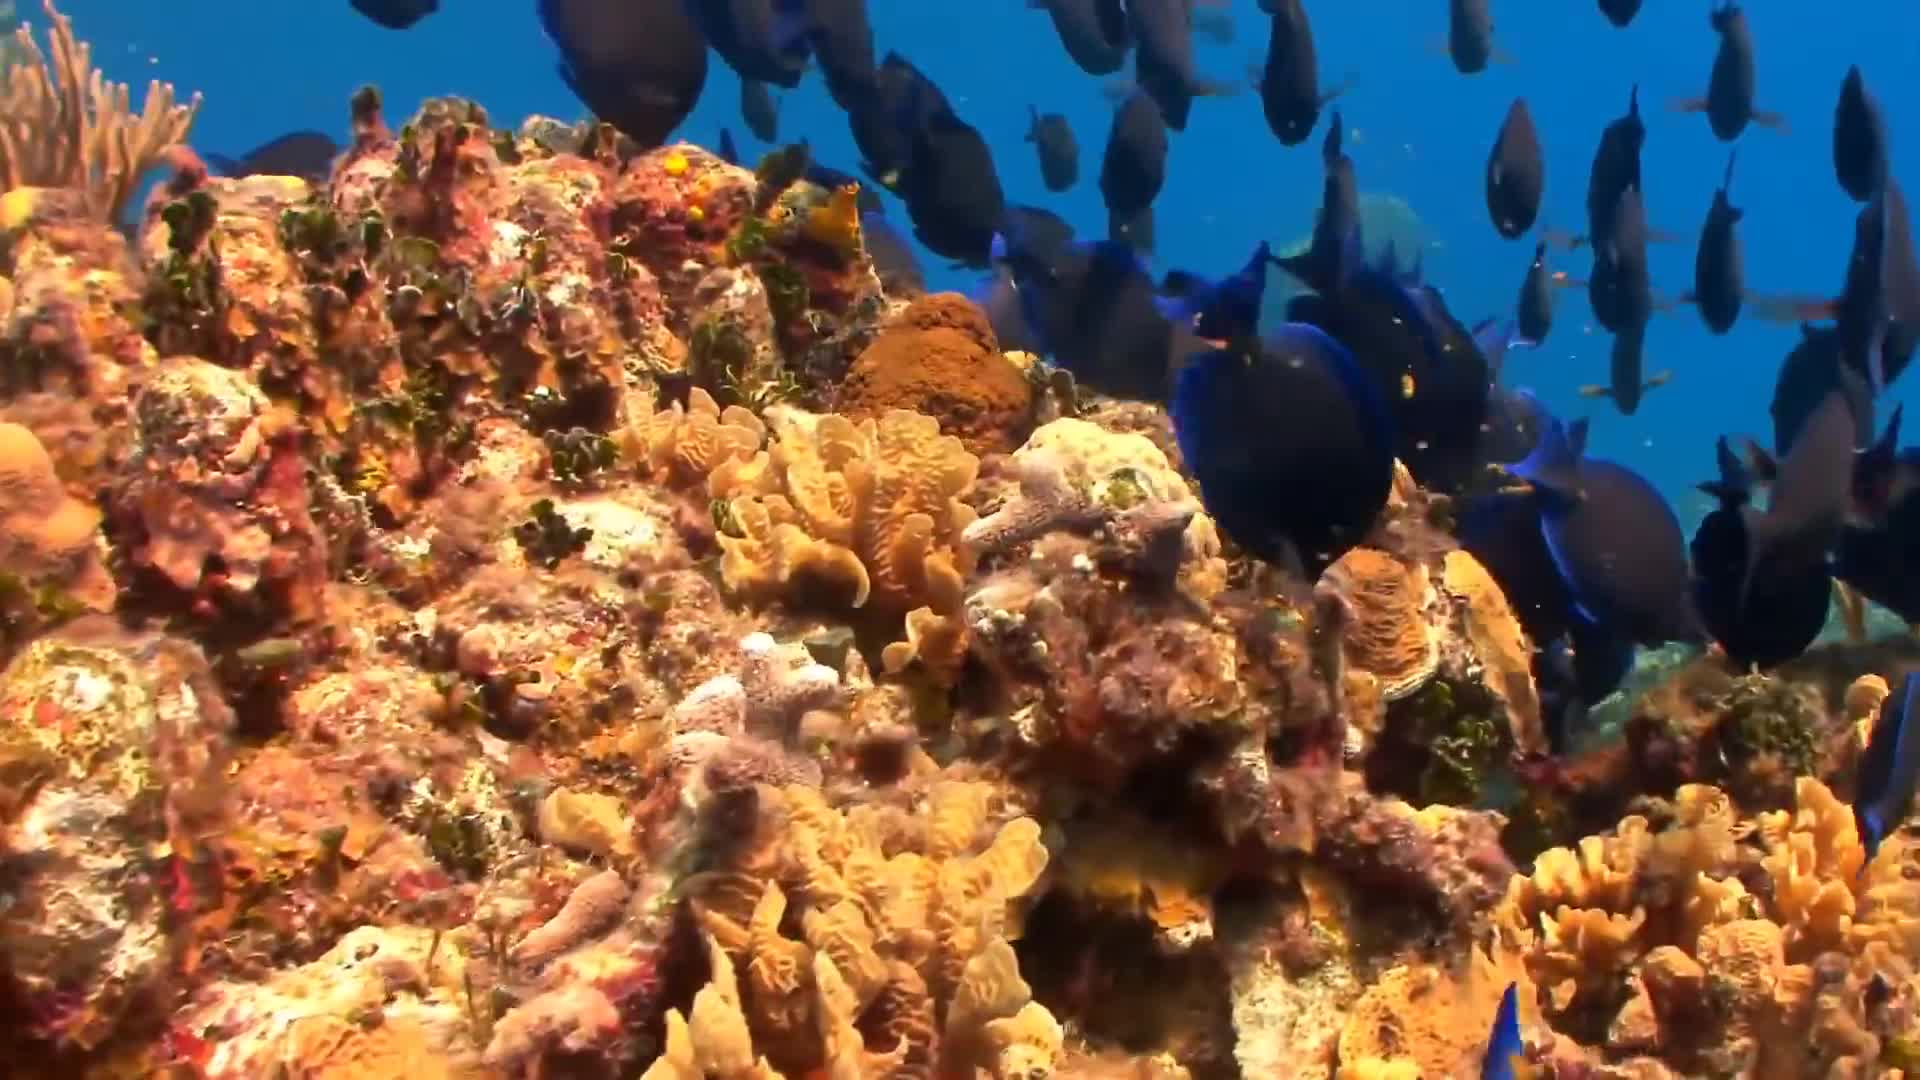 2 Hours, Beautiful, Coral, Coral Reef, Fish, Ocean, - Marine Biology , HD Wallpaper & Backgrounds